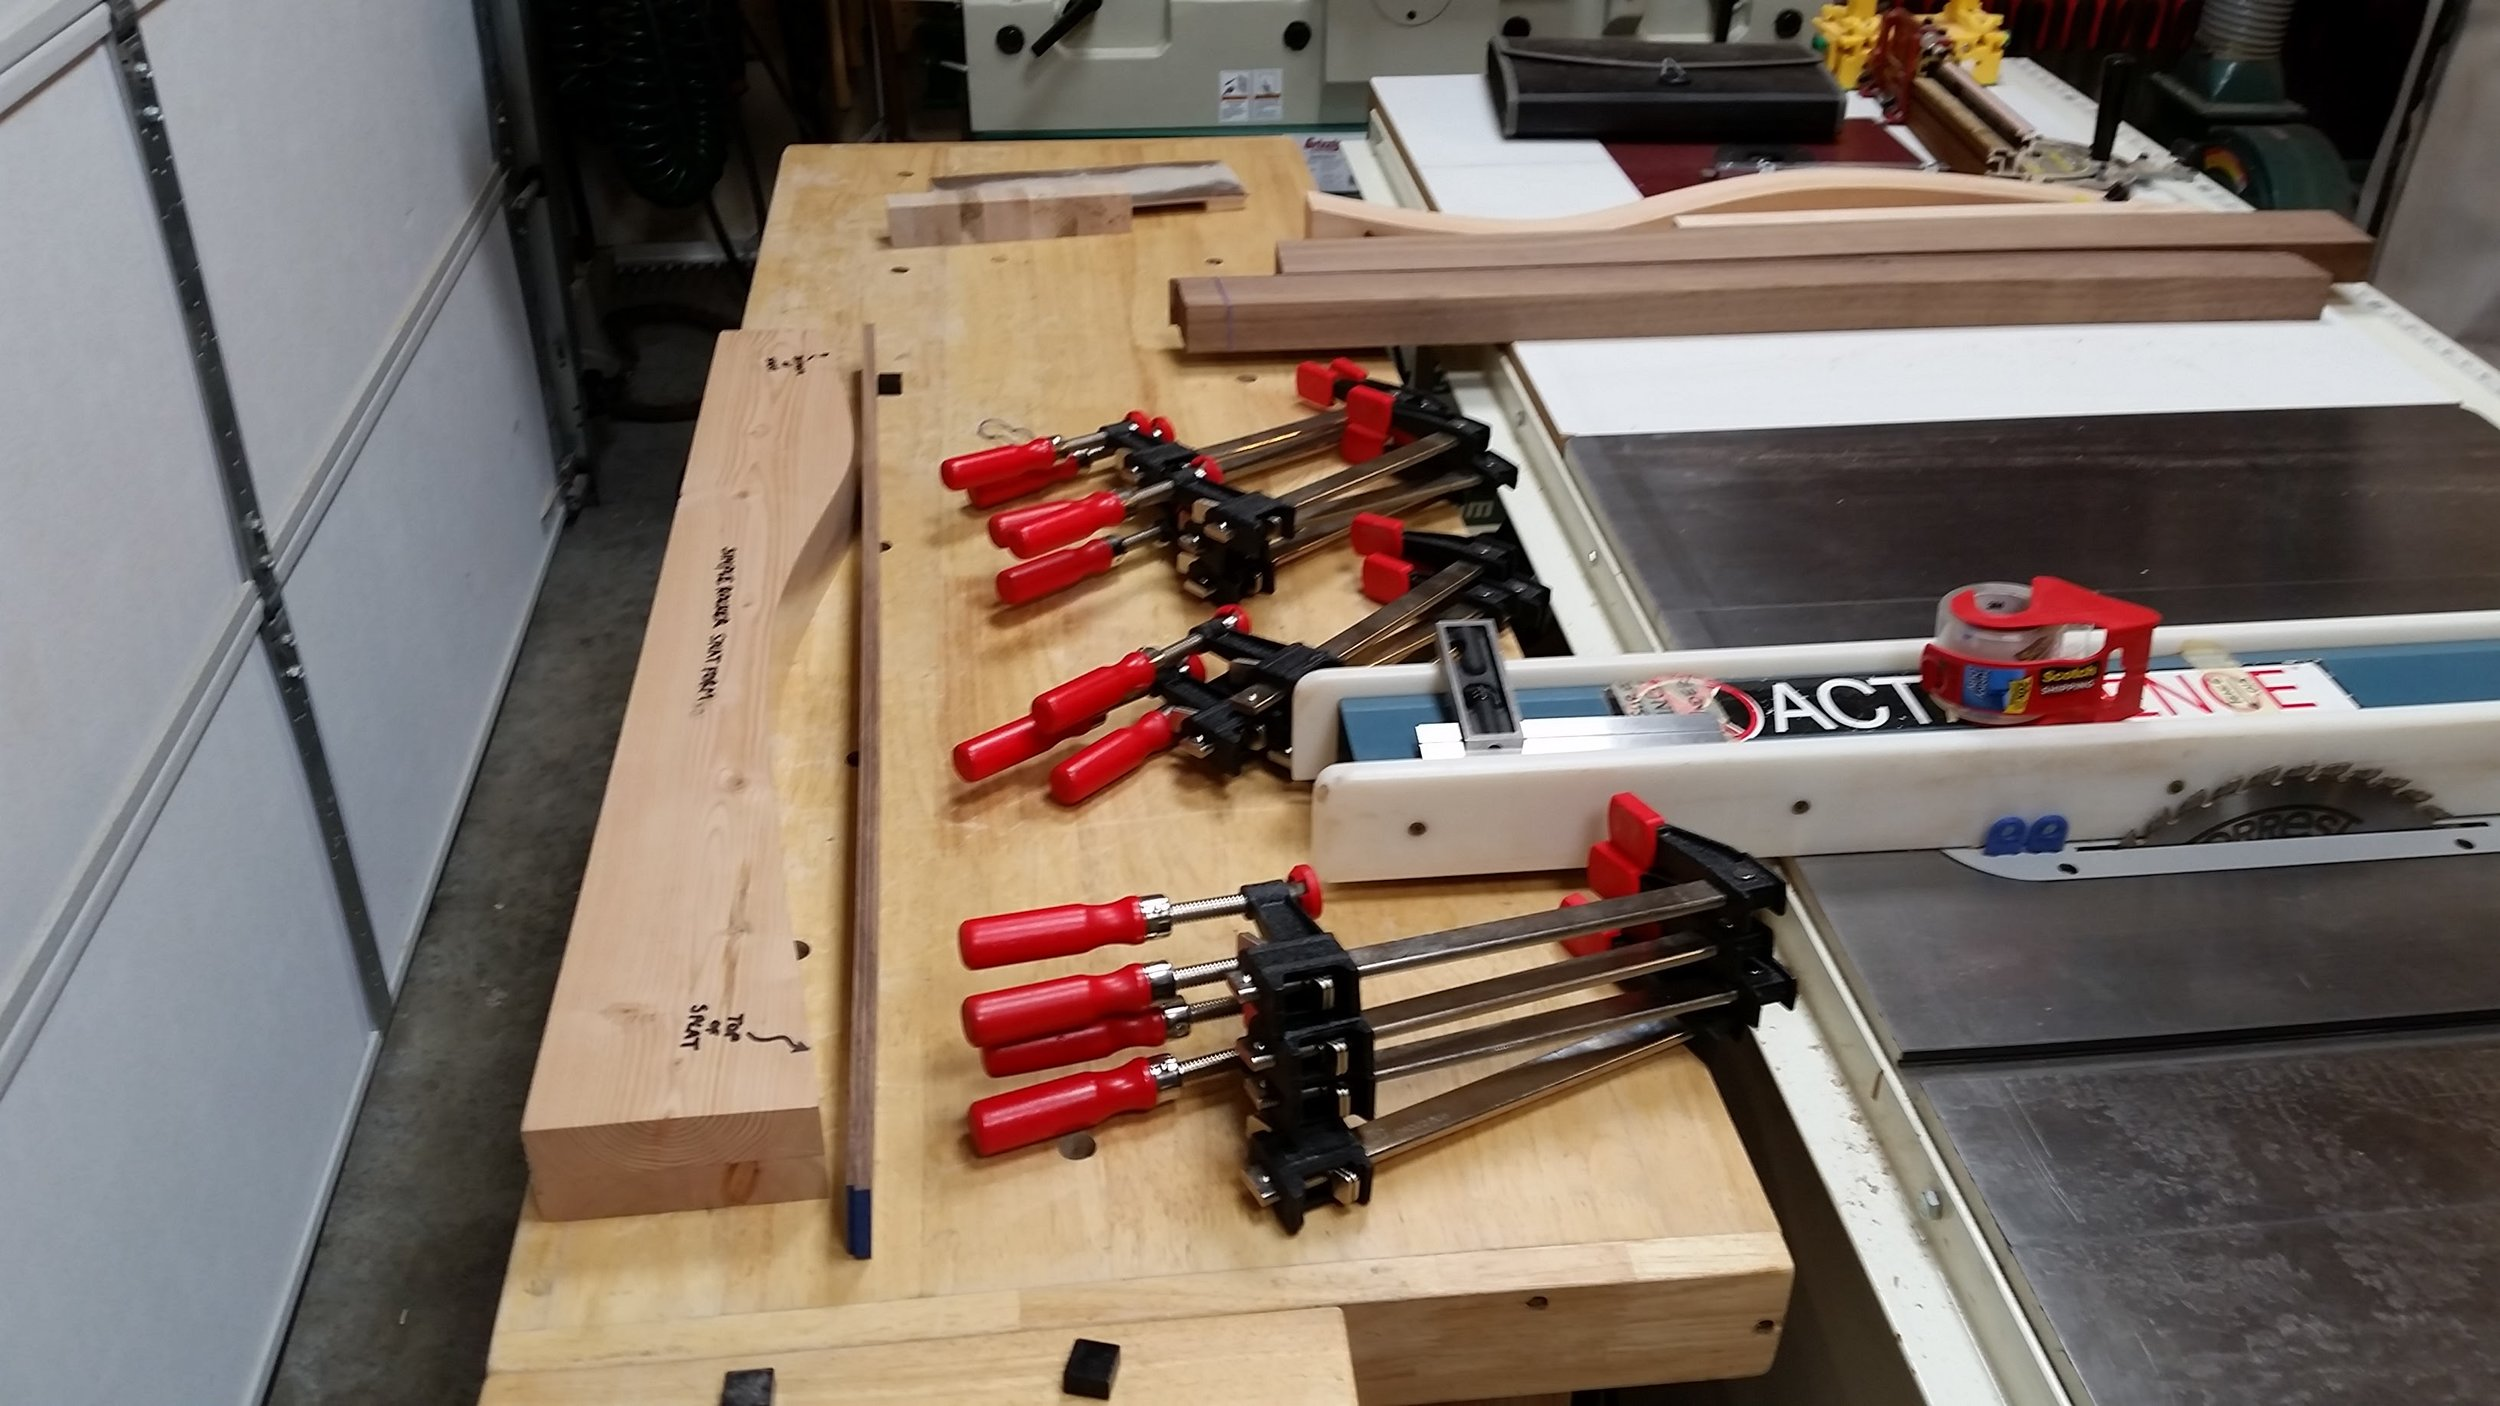 Clamps prepped and ready for first splat glue-up.